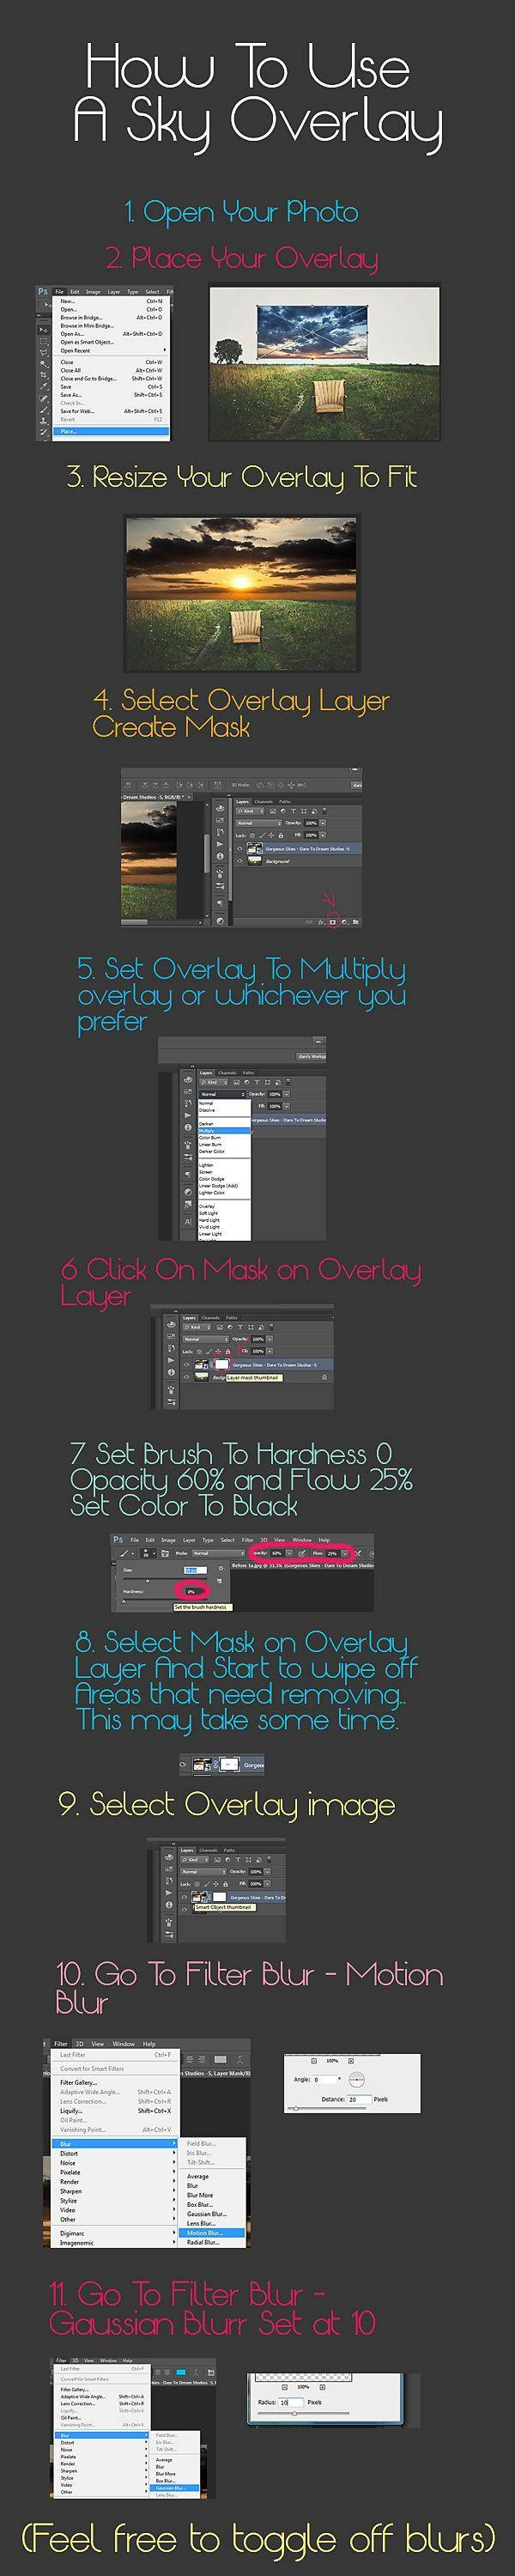 How To Use Use A Sky Overlay   Photoshop tutorial   Photography tips